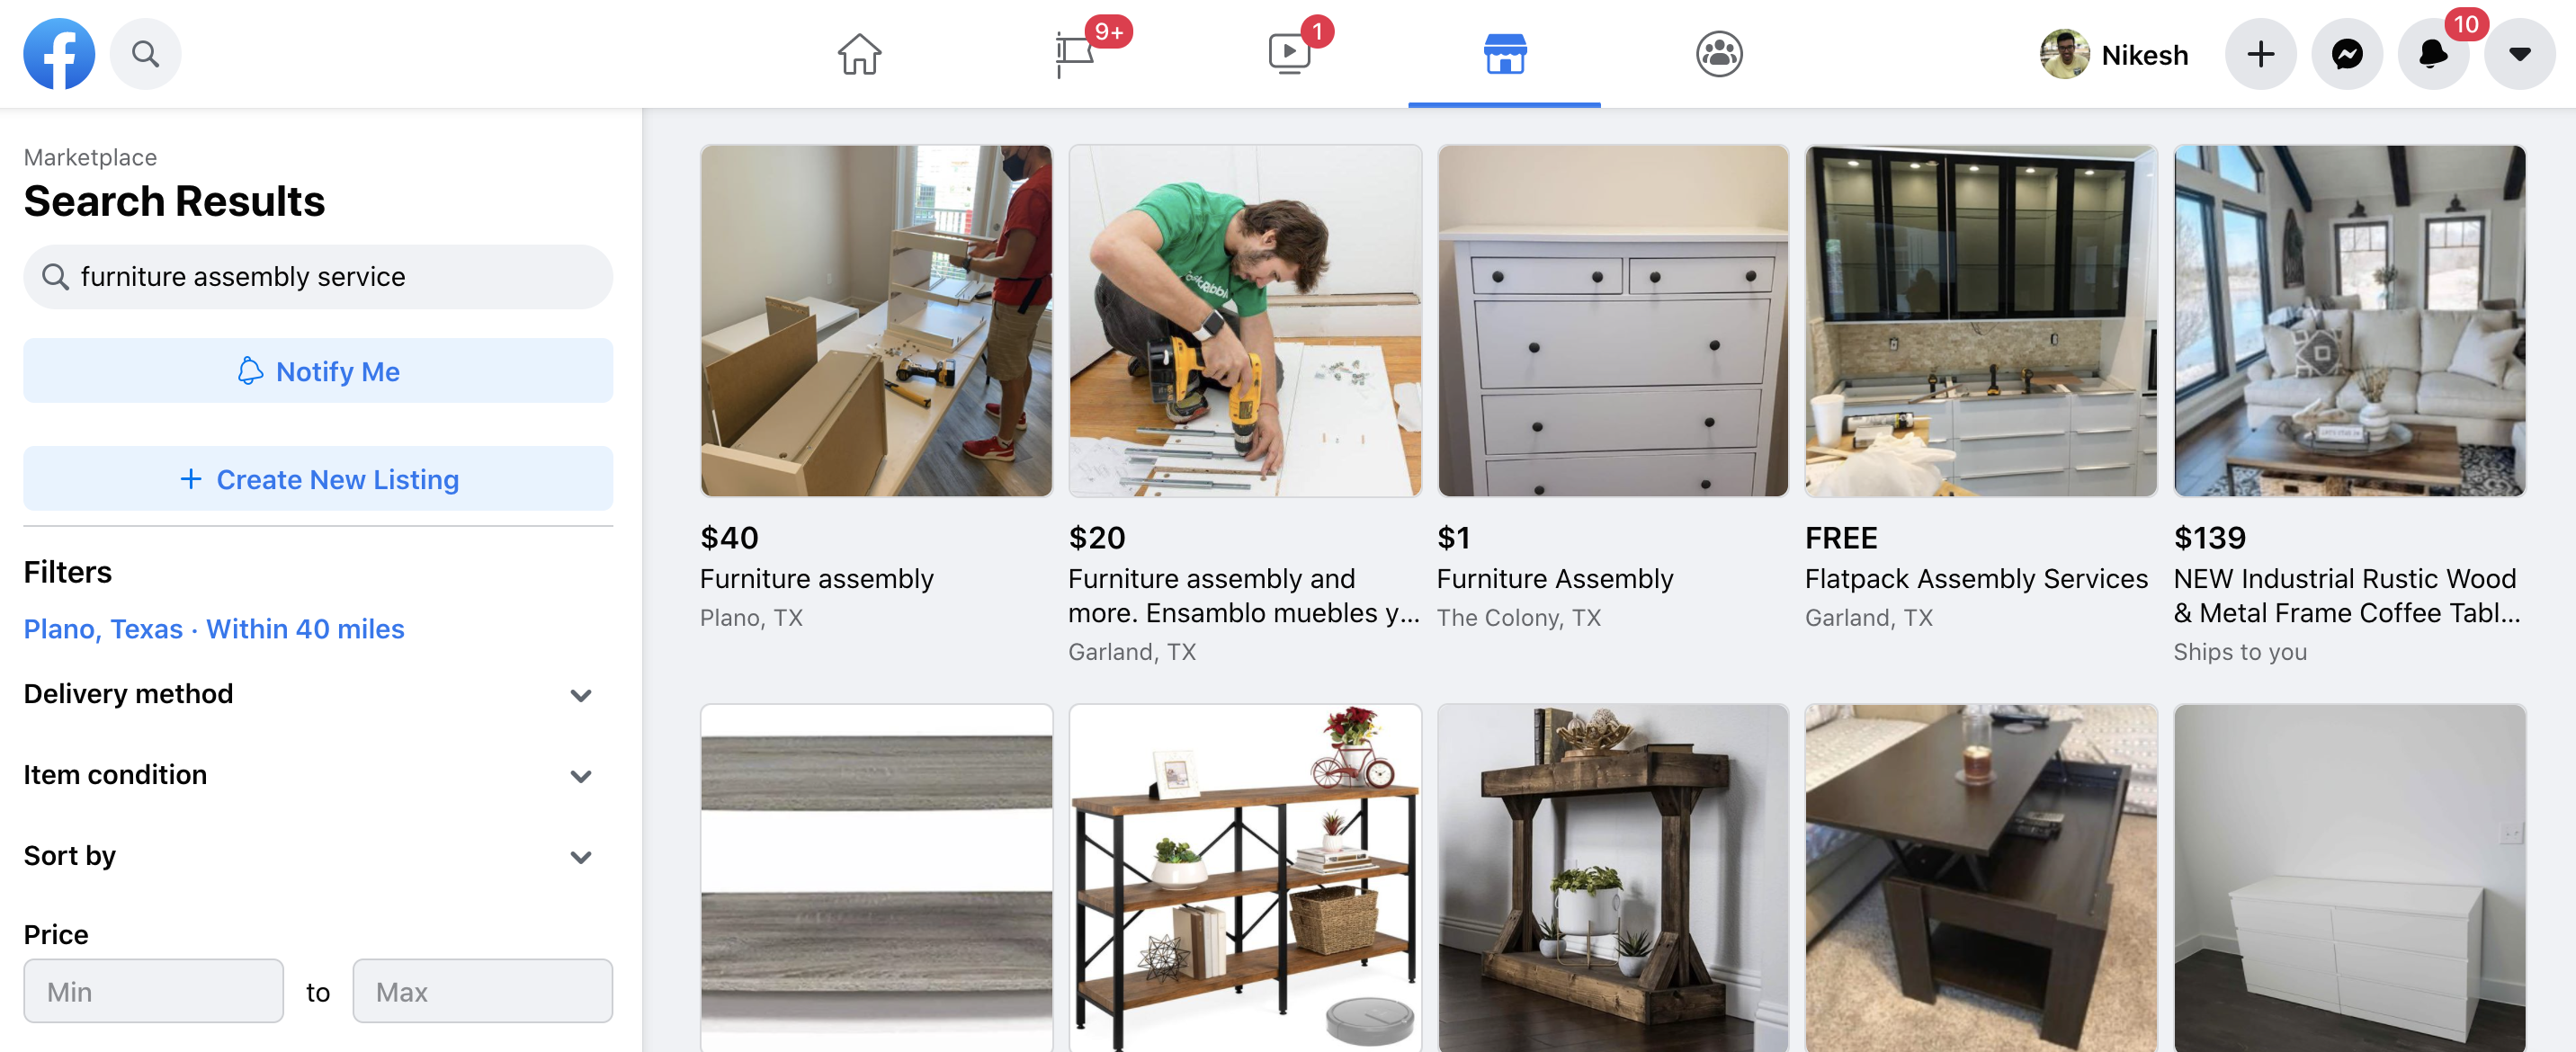 Facebook MarketPlace Furniture Assembly